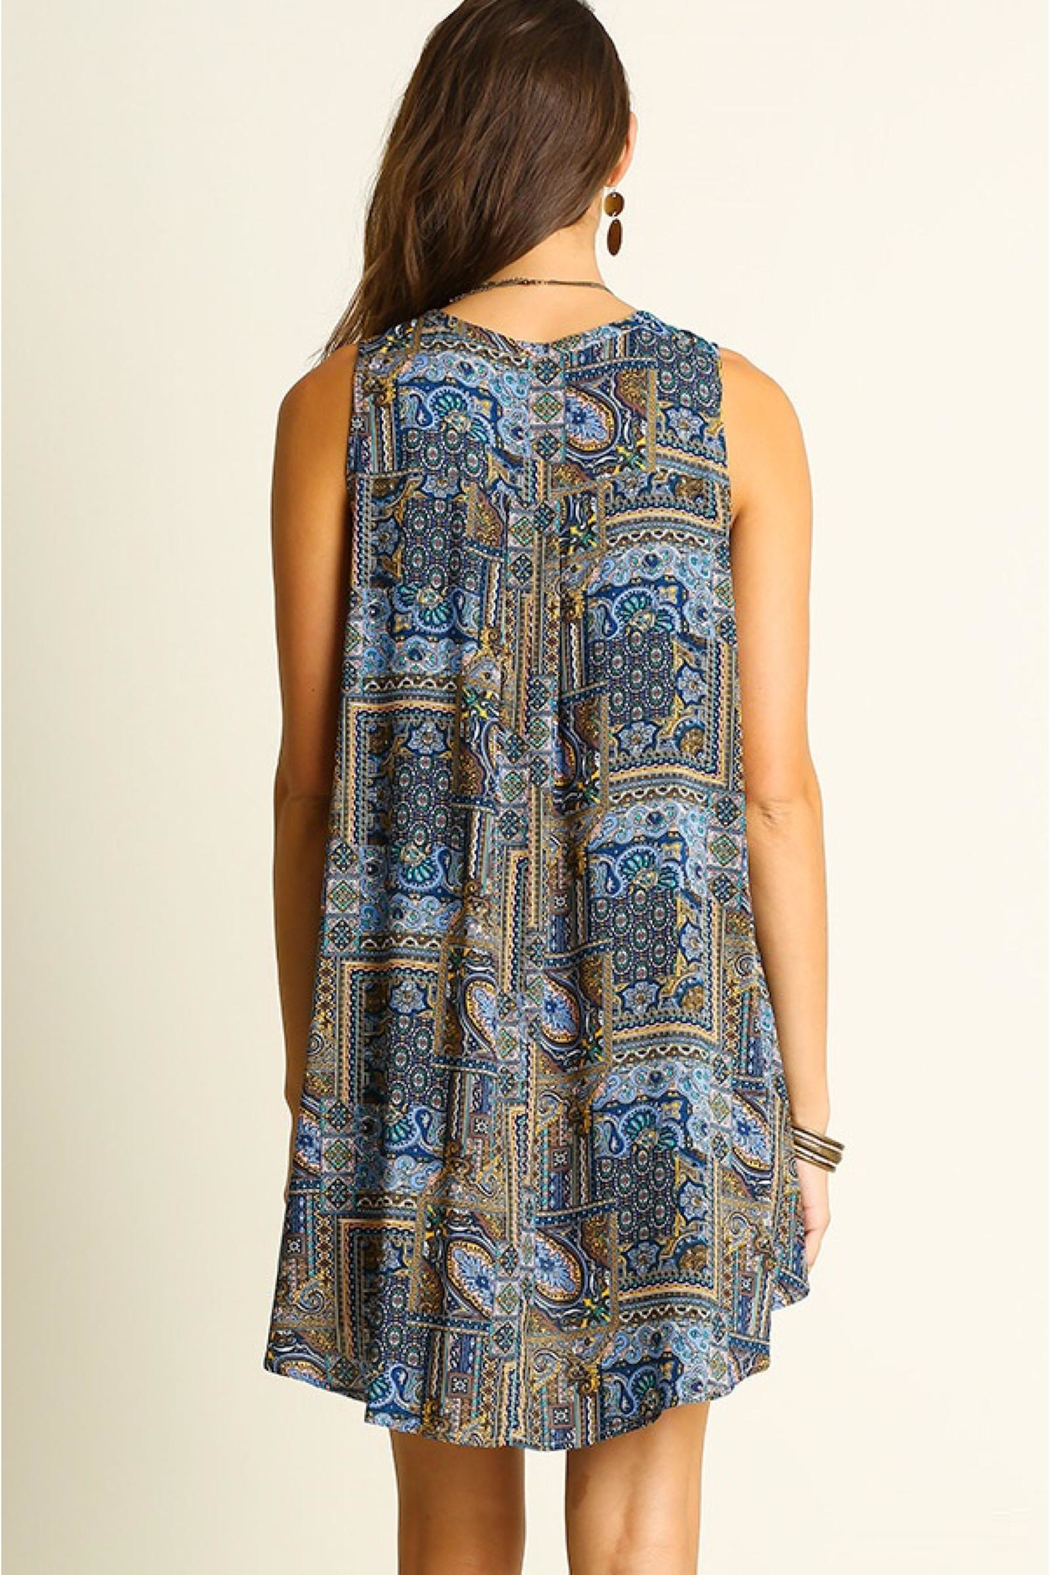 People Outfitter Print Shift Dress - Side Cropped Image